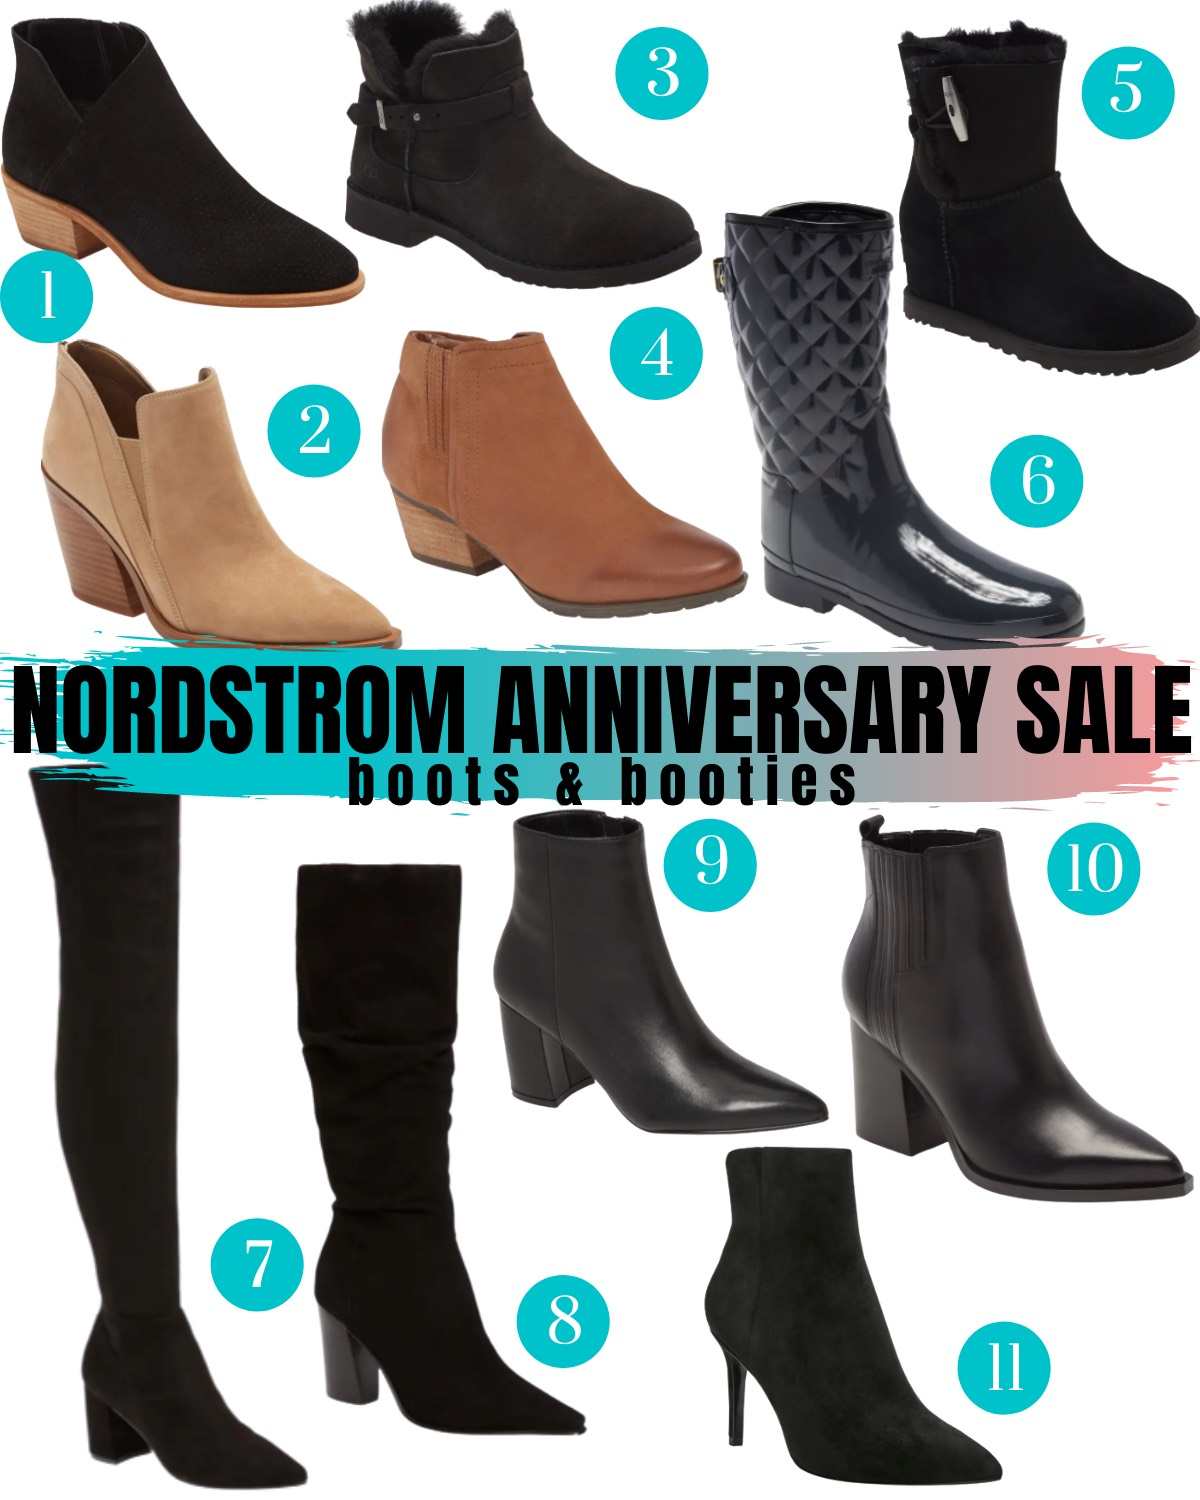 Nordstrom Anniversary Sale 2020 boots and booties